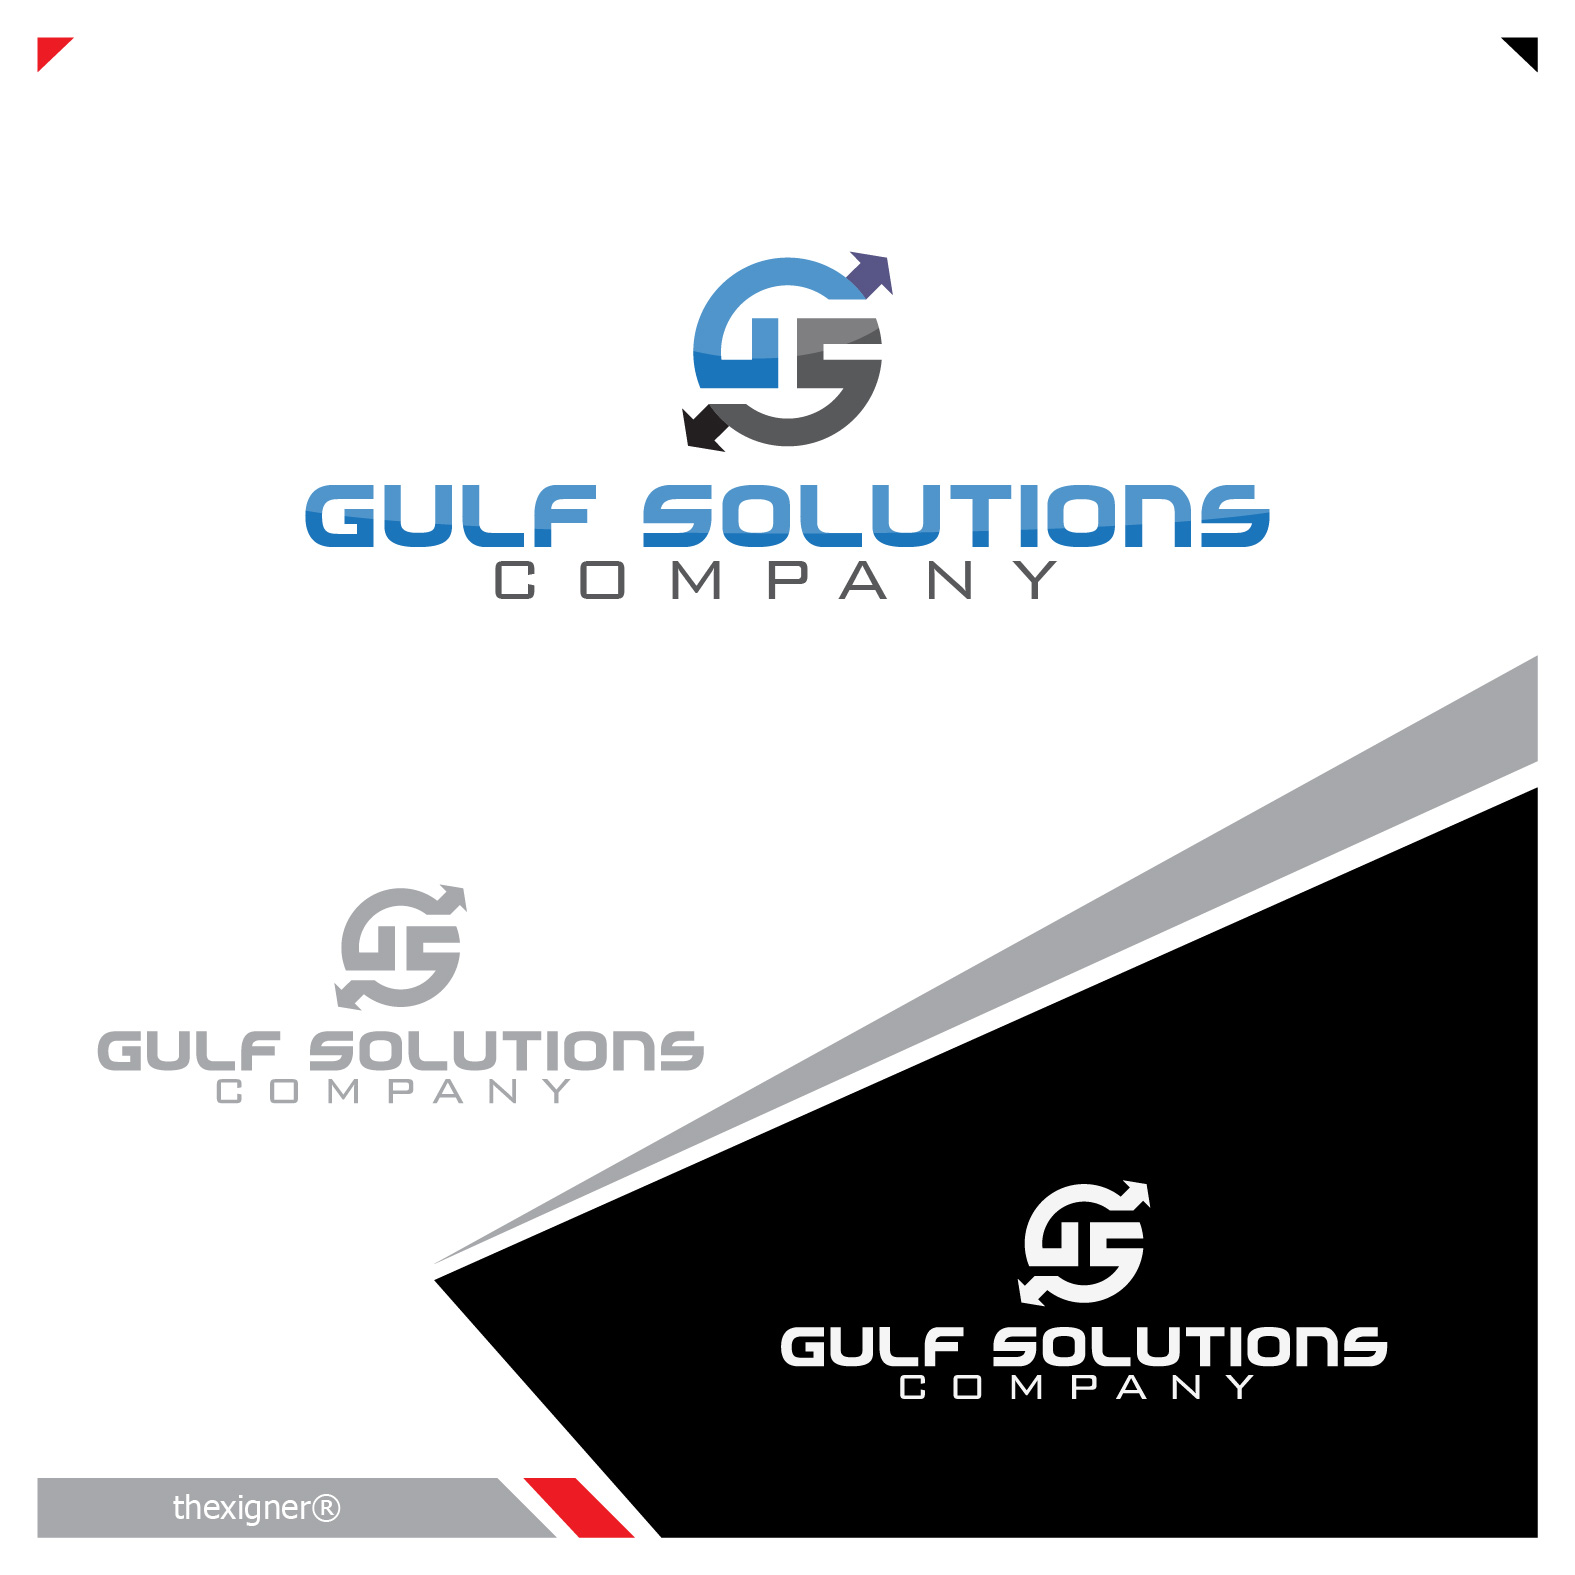 Logo Design by lagalag - Entry No. 74 in the Logo Design Contest New Logo Design for Gulf solutions company.